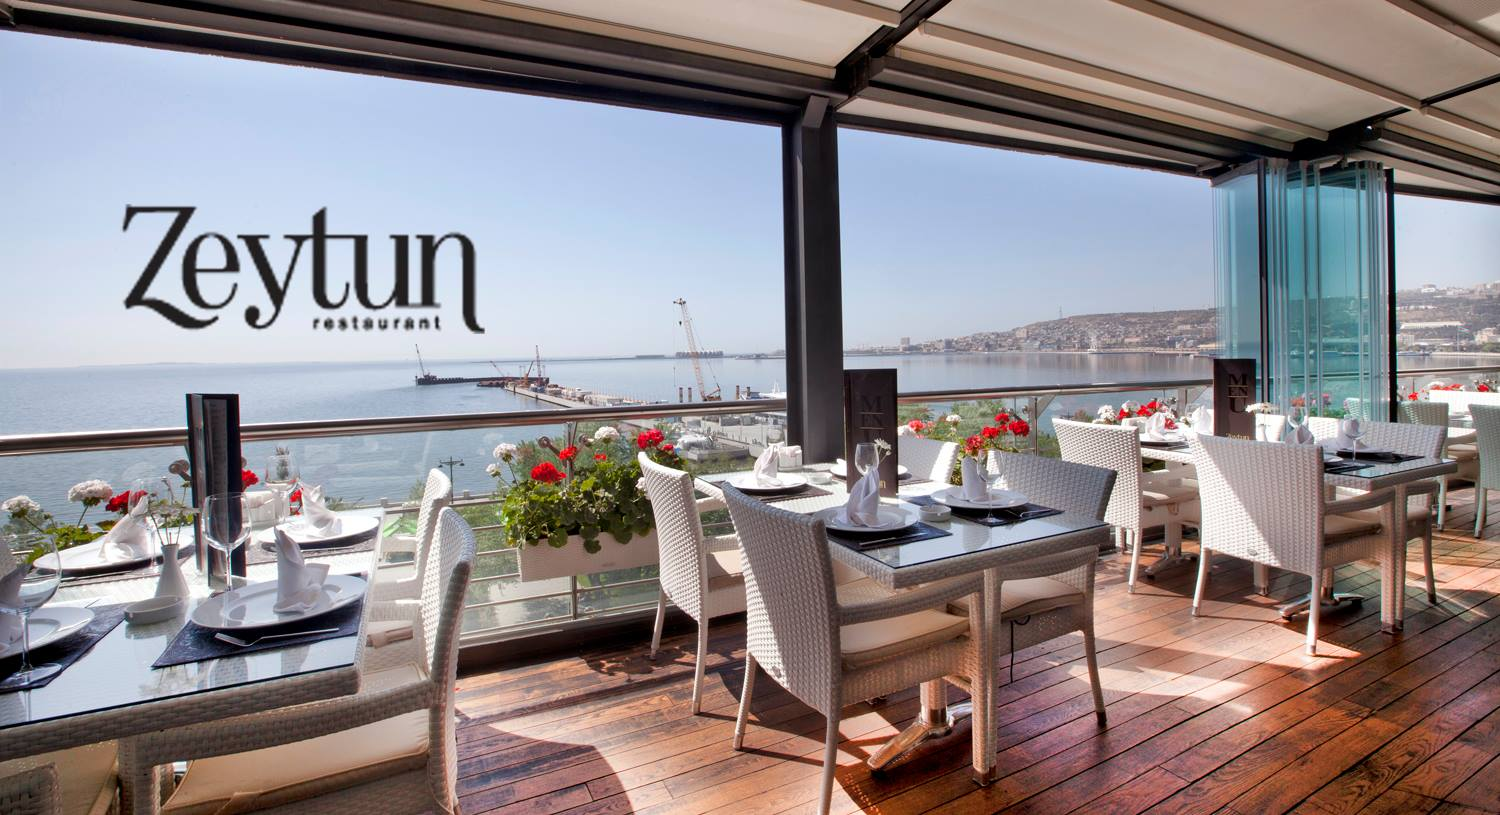 Restaurant Baku Top 10 Restaurants In Baku Ulduz Tourism Azerbaijan Tour